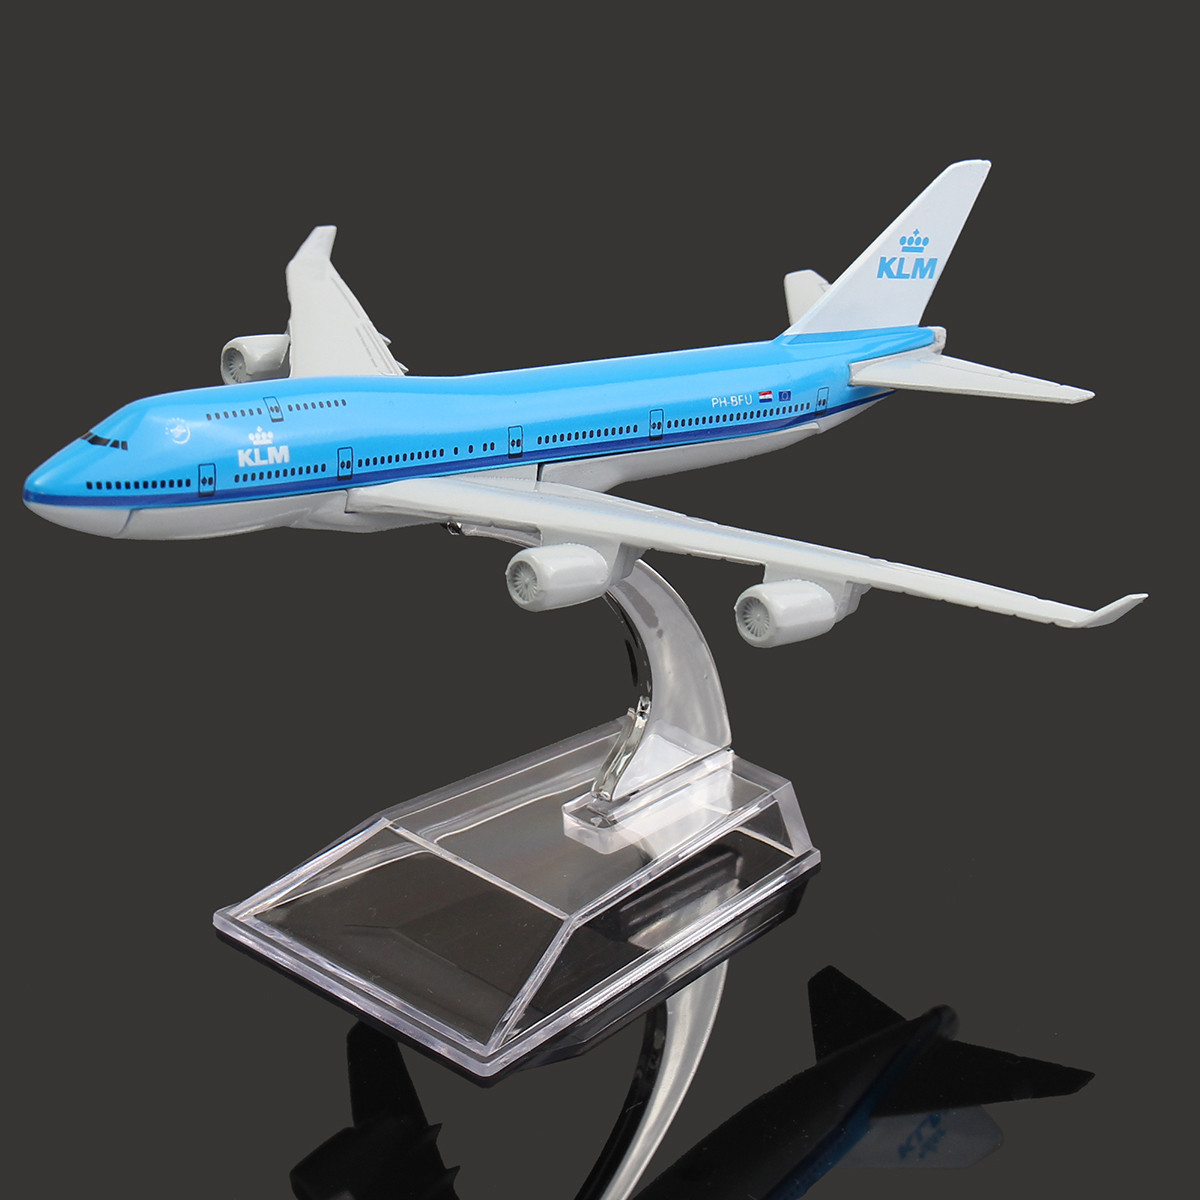 Toy Models Product : New cm airplane metal plane model aircraft b klm